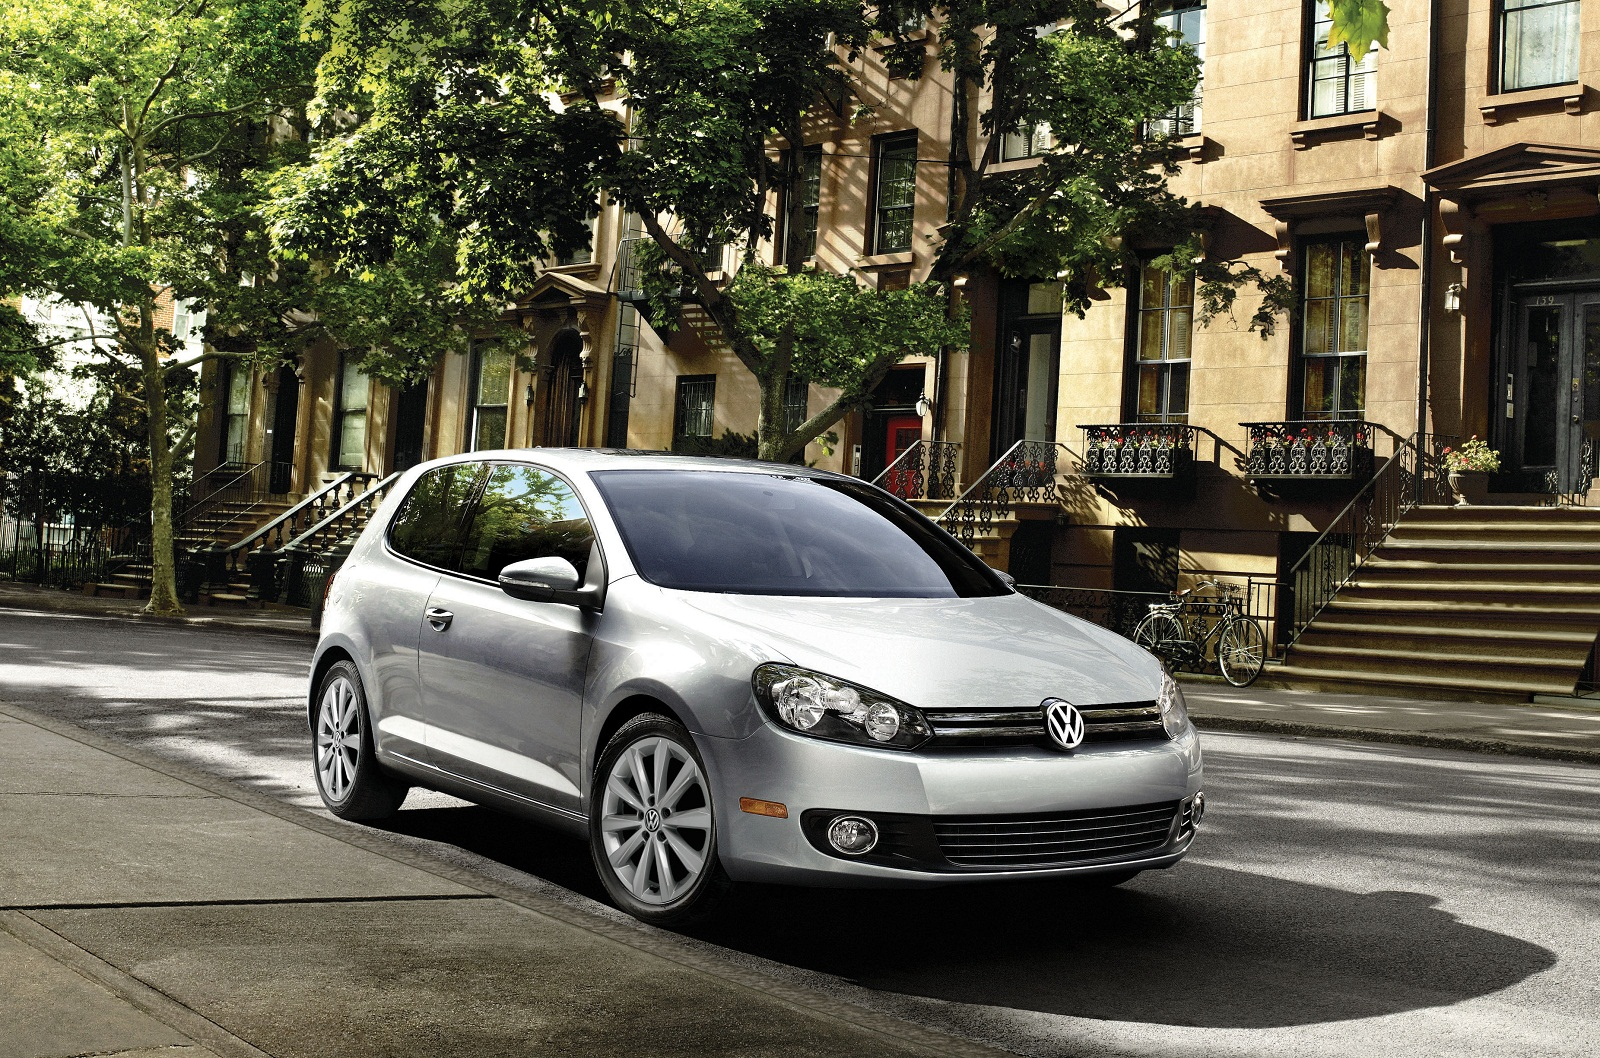 Volkswagen To Add Natural-Gas Cars As Well As Diesels